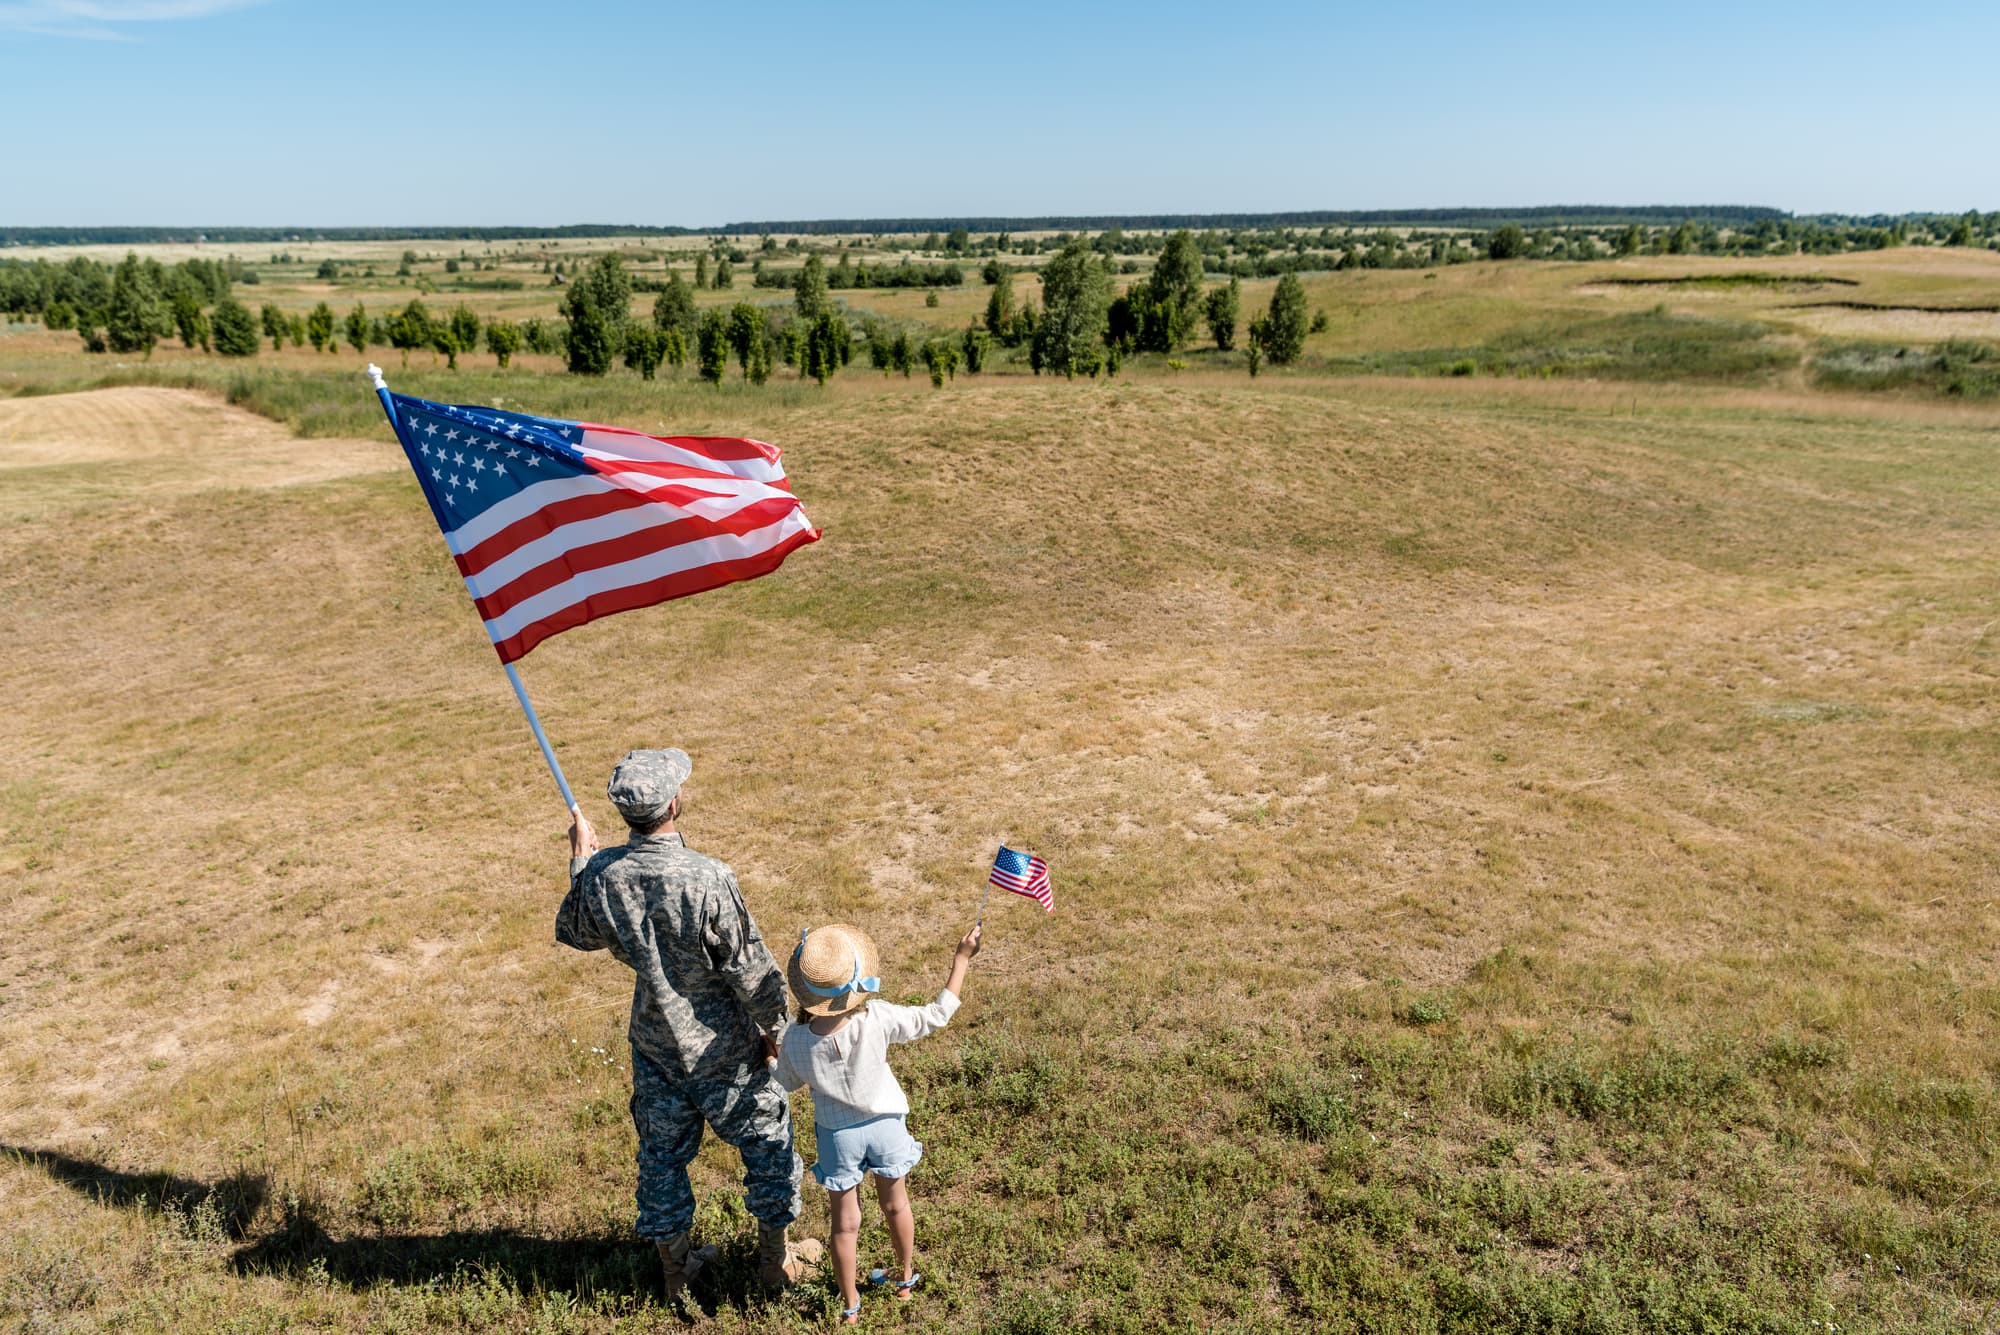 a child and her military dad carrying a flag